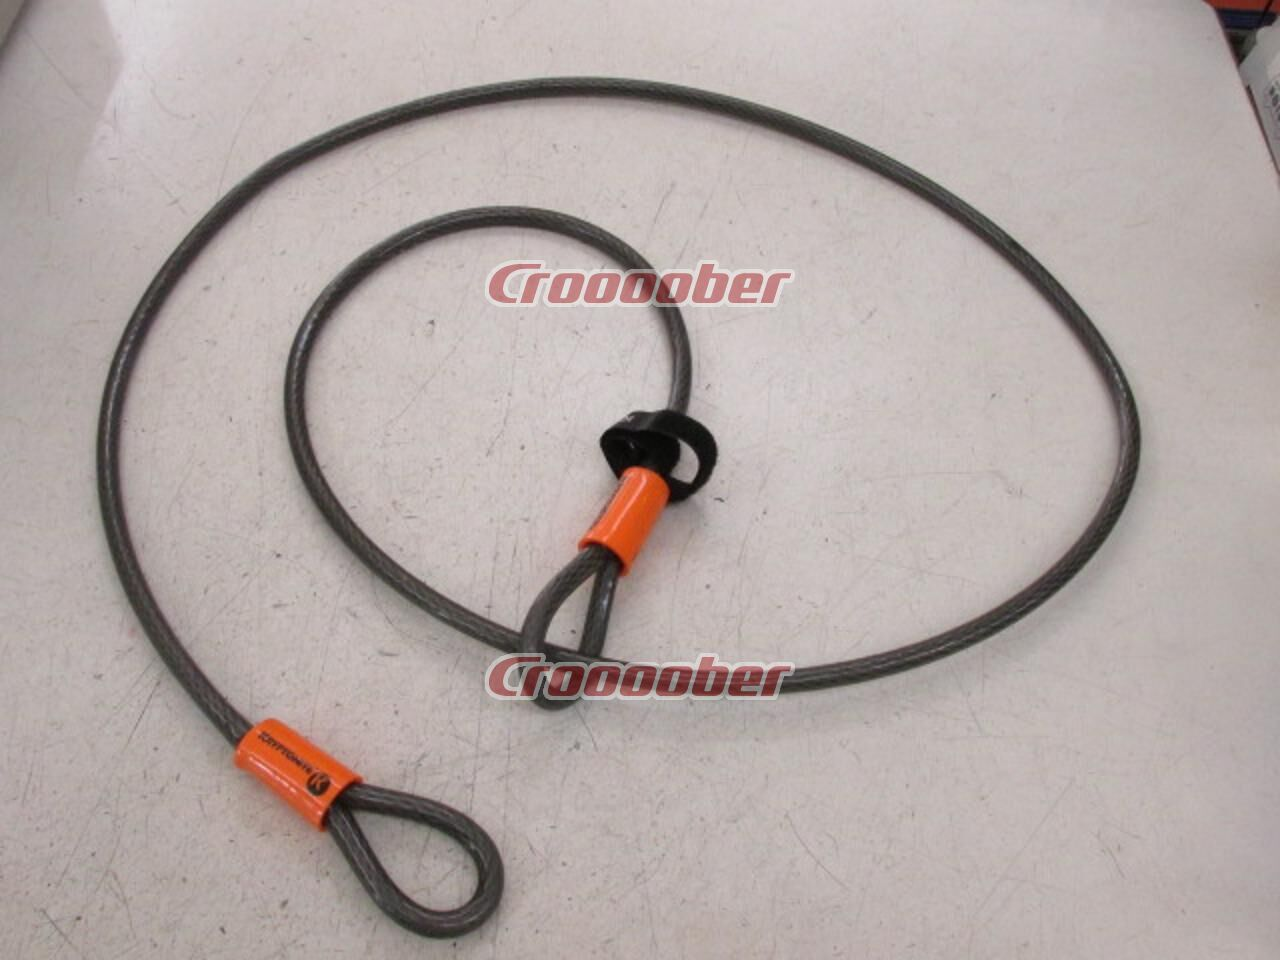 Kryptonite Wire Cable About 2m | Other Accessories | Croooober Japan